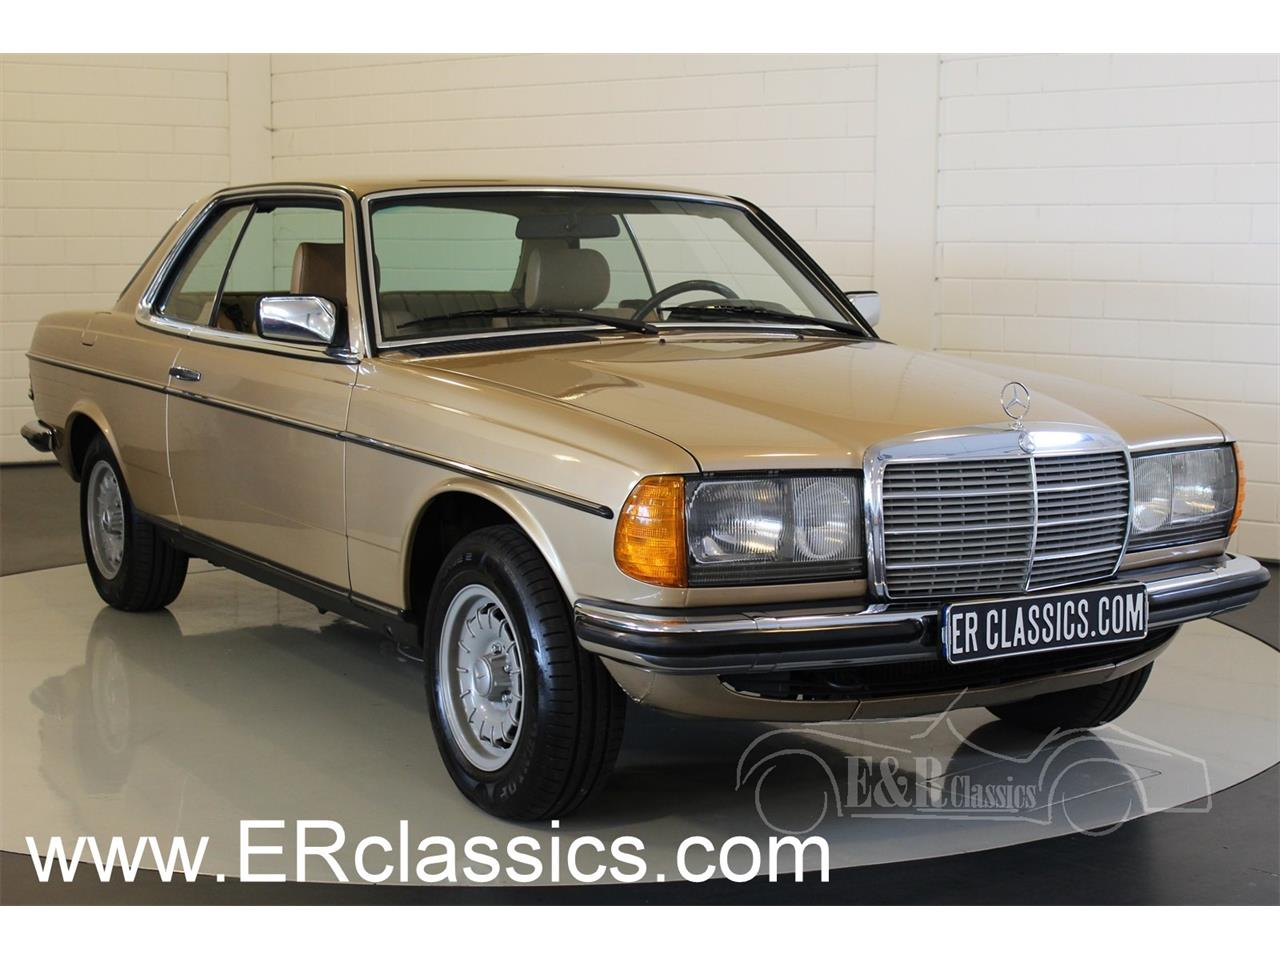 Large Picture of 1984 230 - $21,800.00 Offered by E & R Classics - MO97